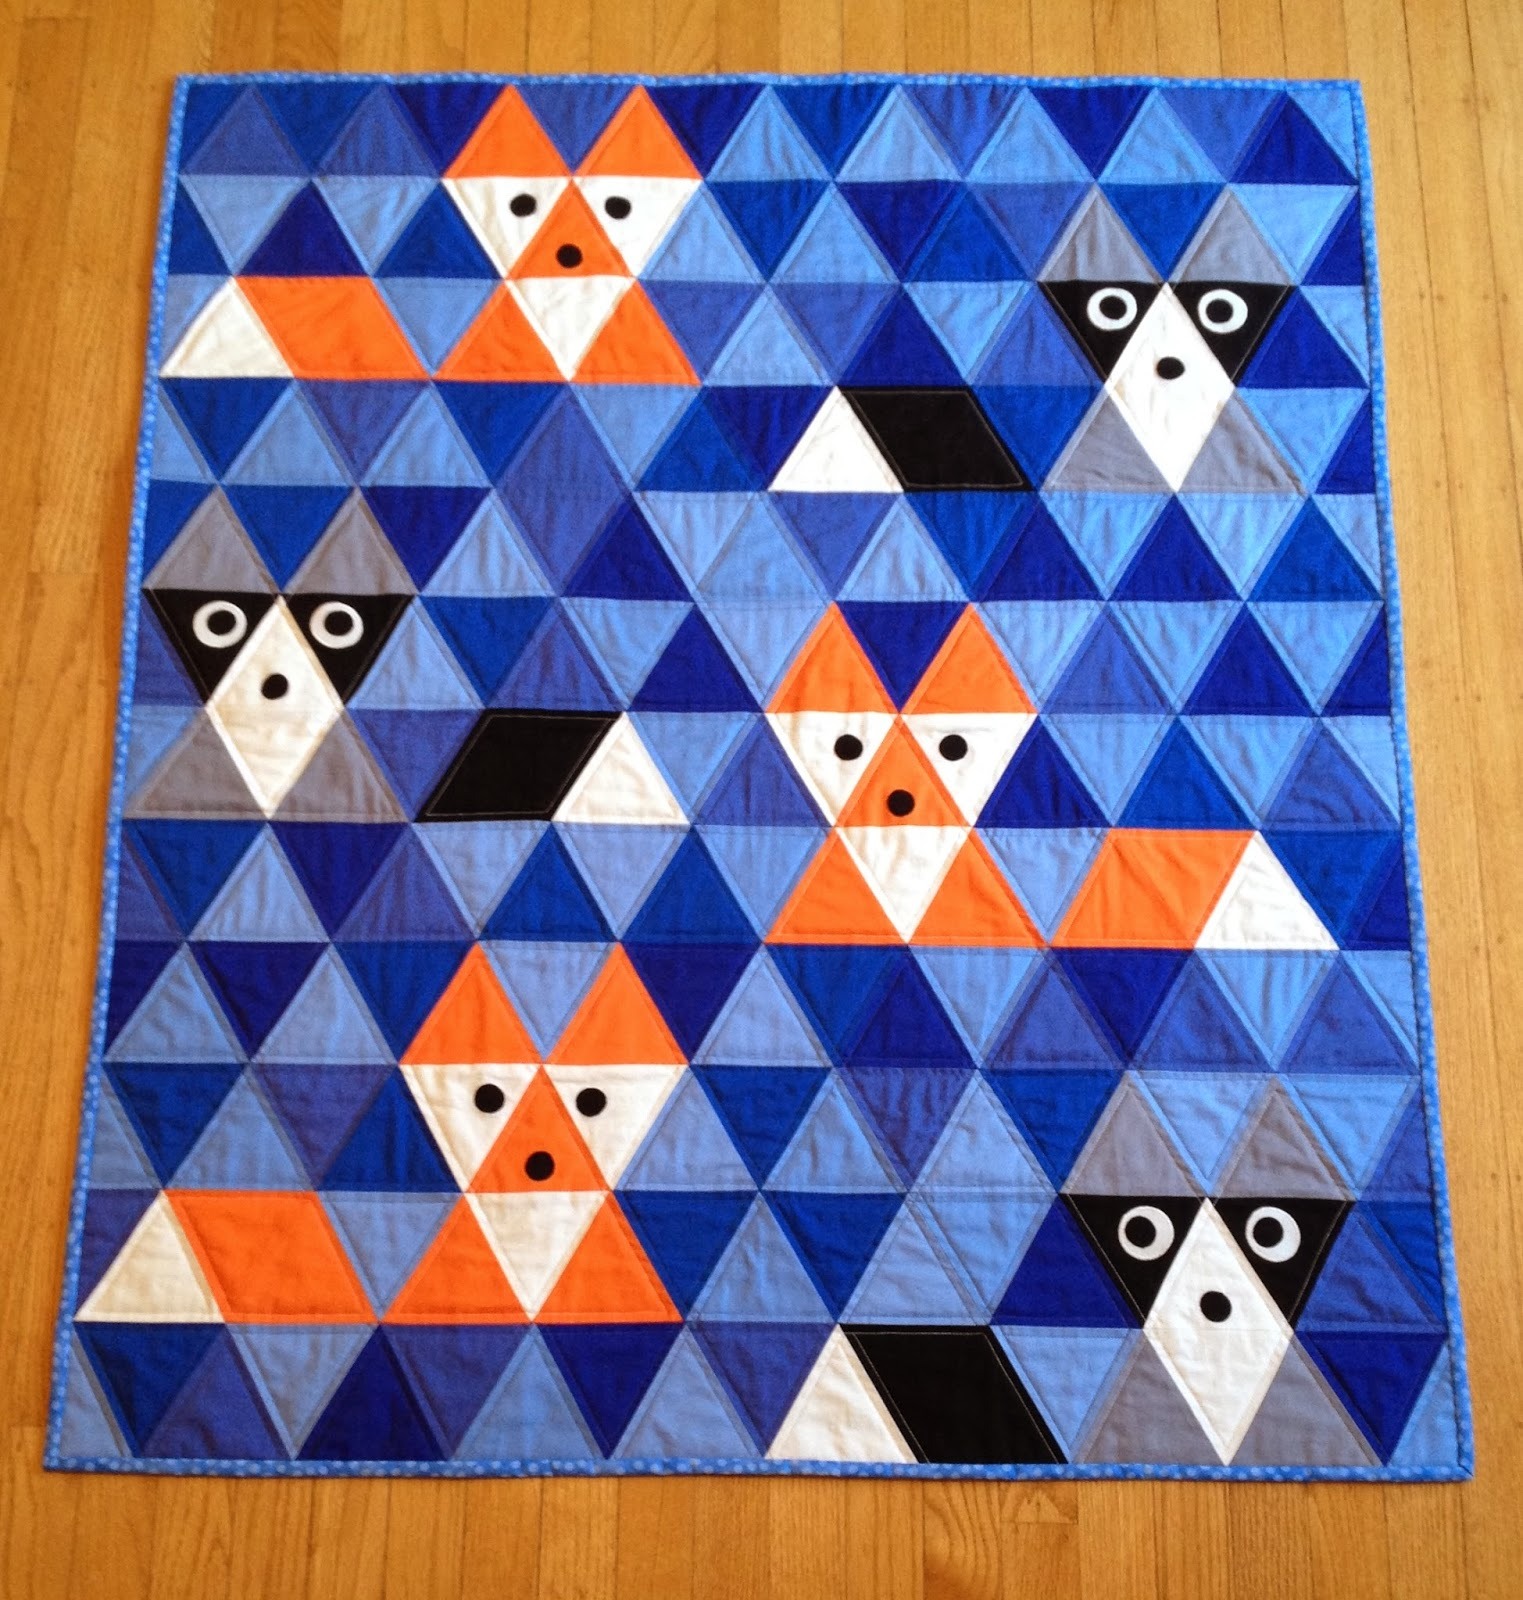 Sew Fresh Quilts: Equilateral Triangle Quilt Along : equilateral triangle quilt tutorial - Adamdwight.com